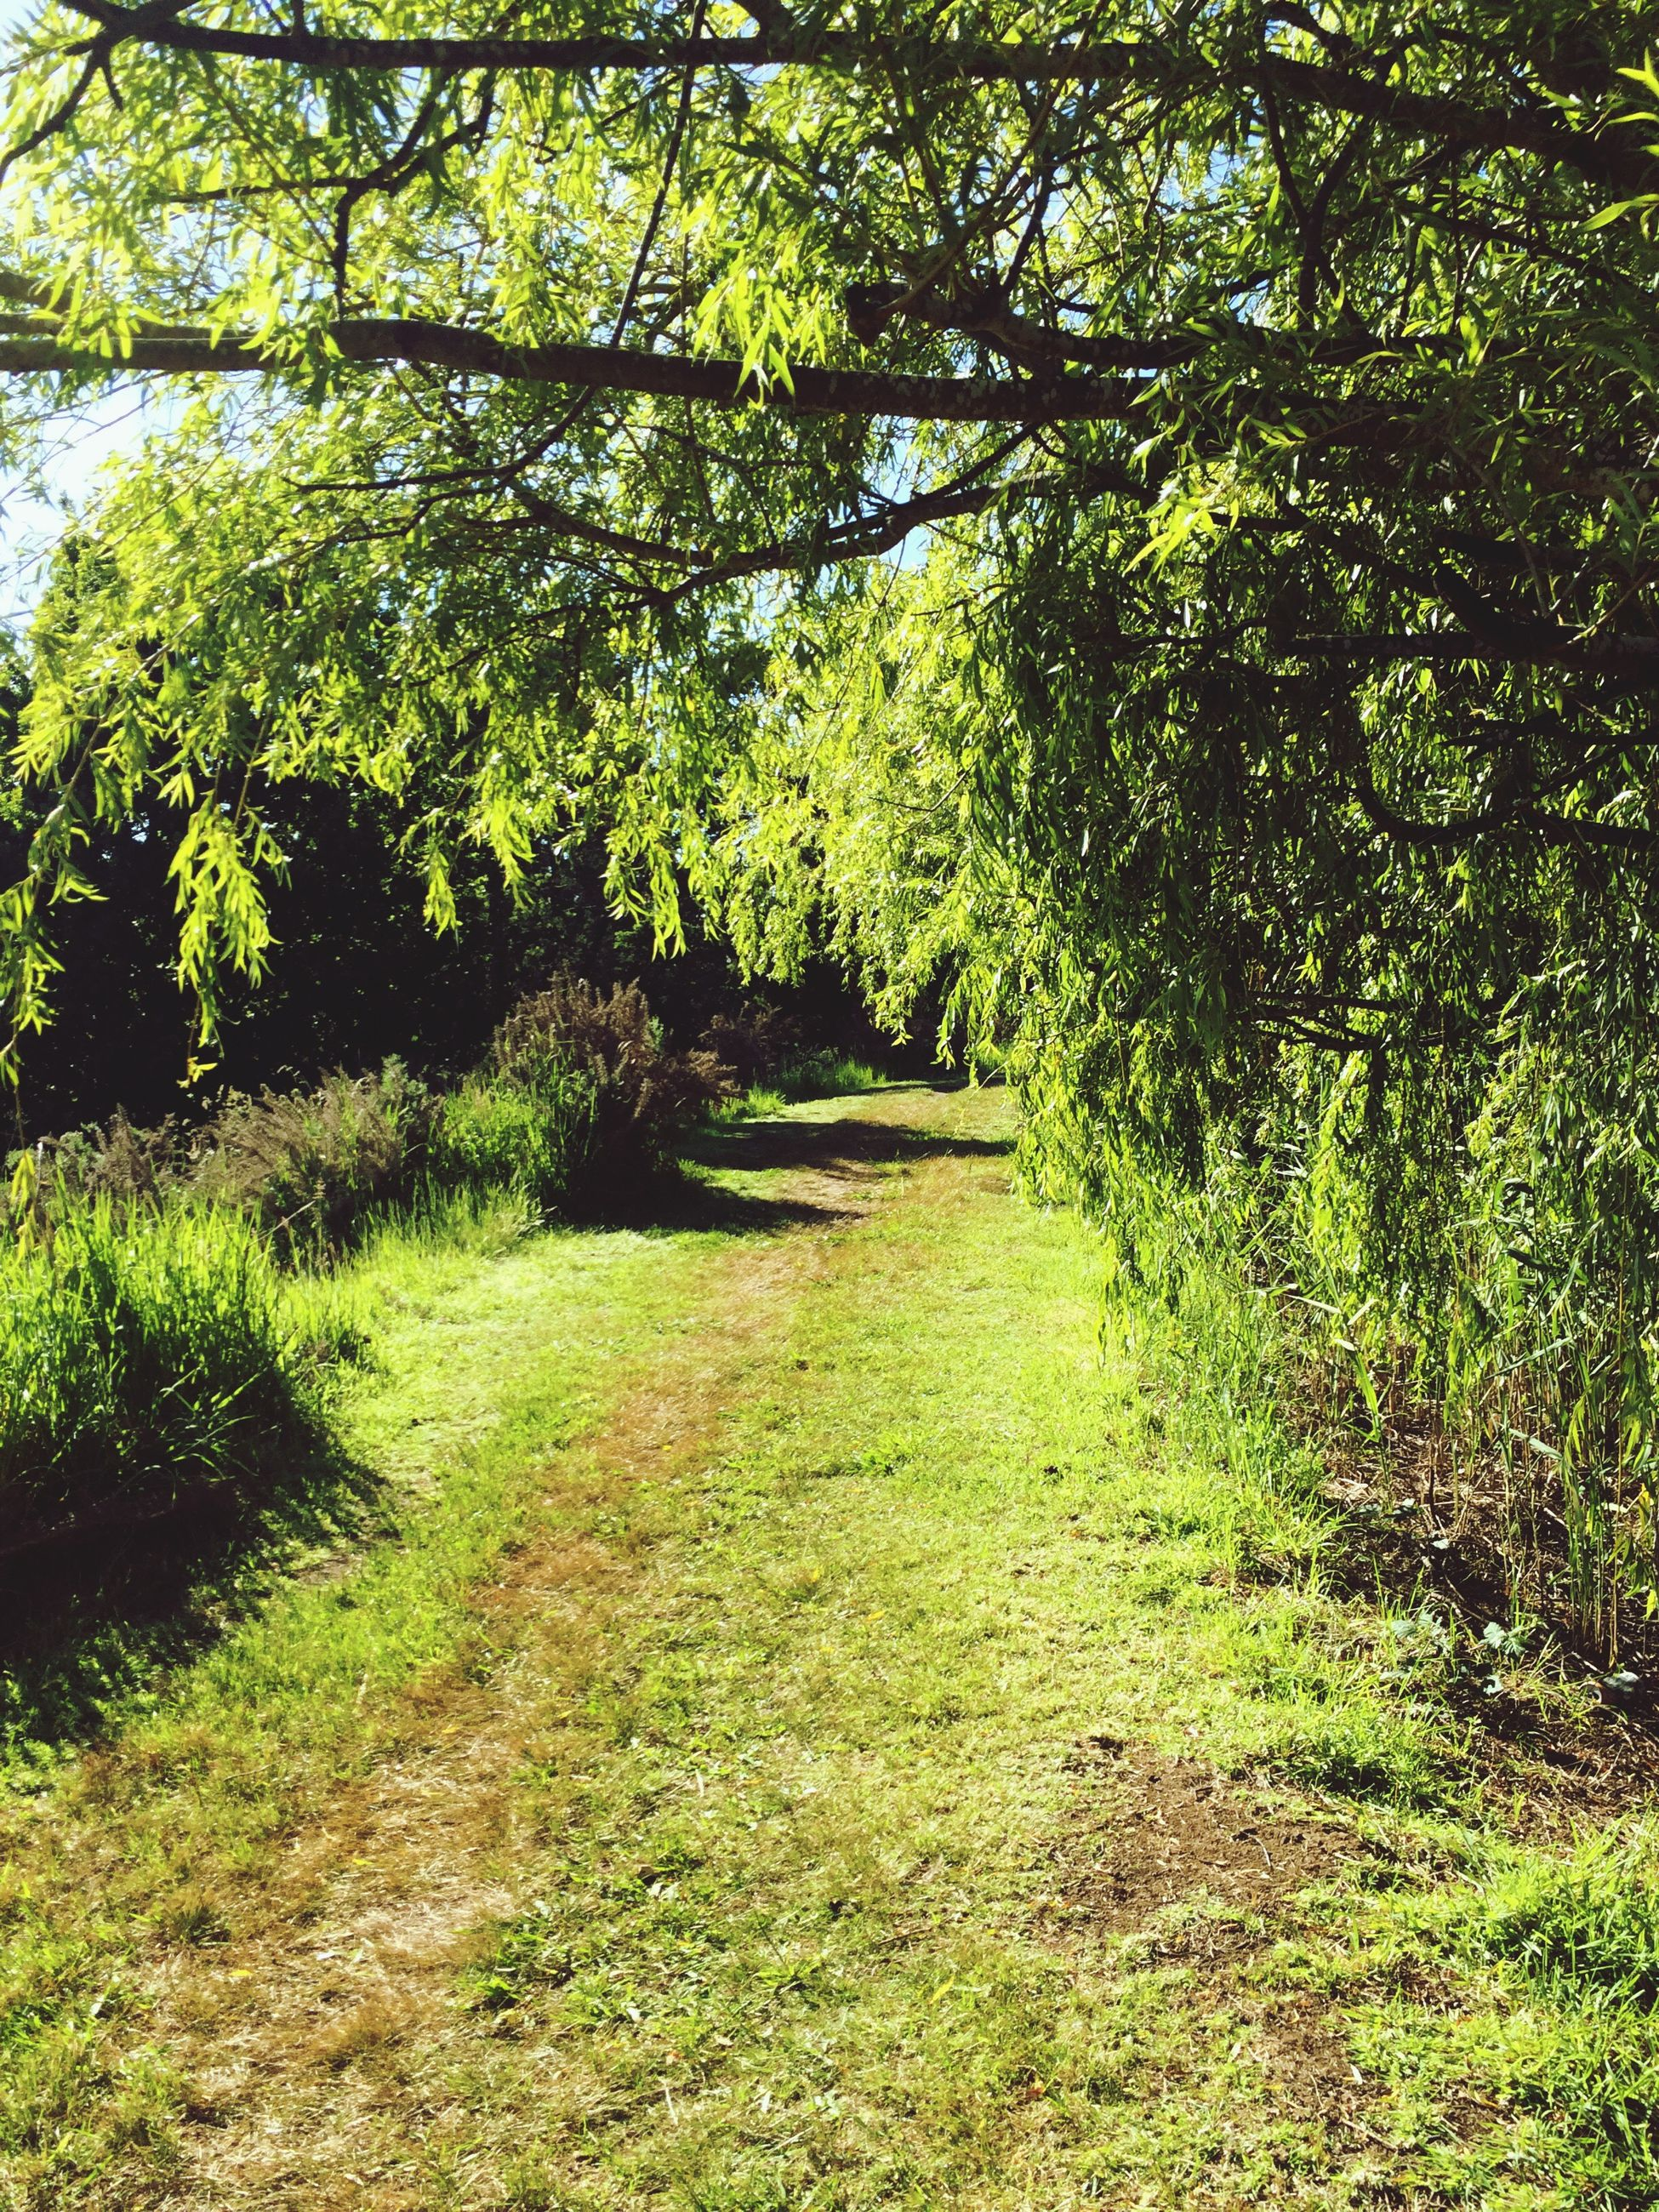 tree, nature, growth, green color, outdoors, no people, day, beauty in nature, scenics, backgrounds